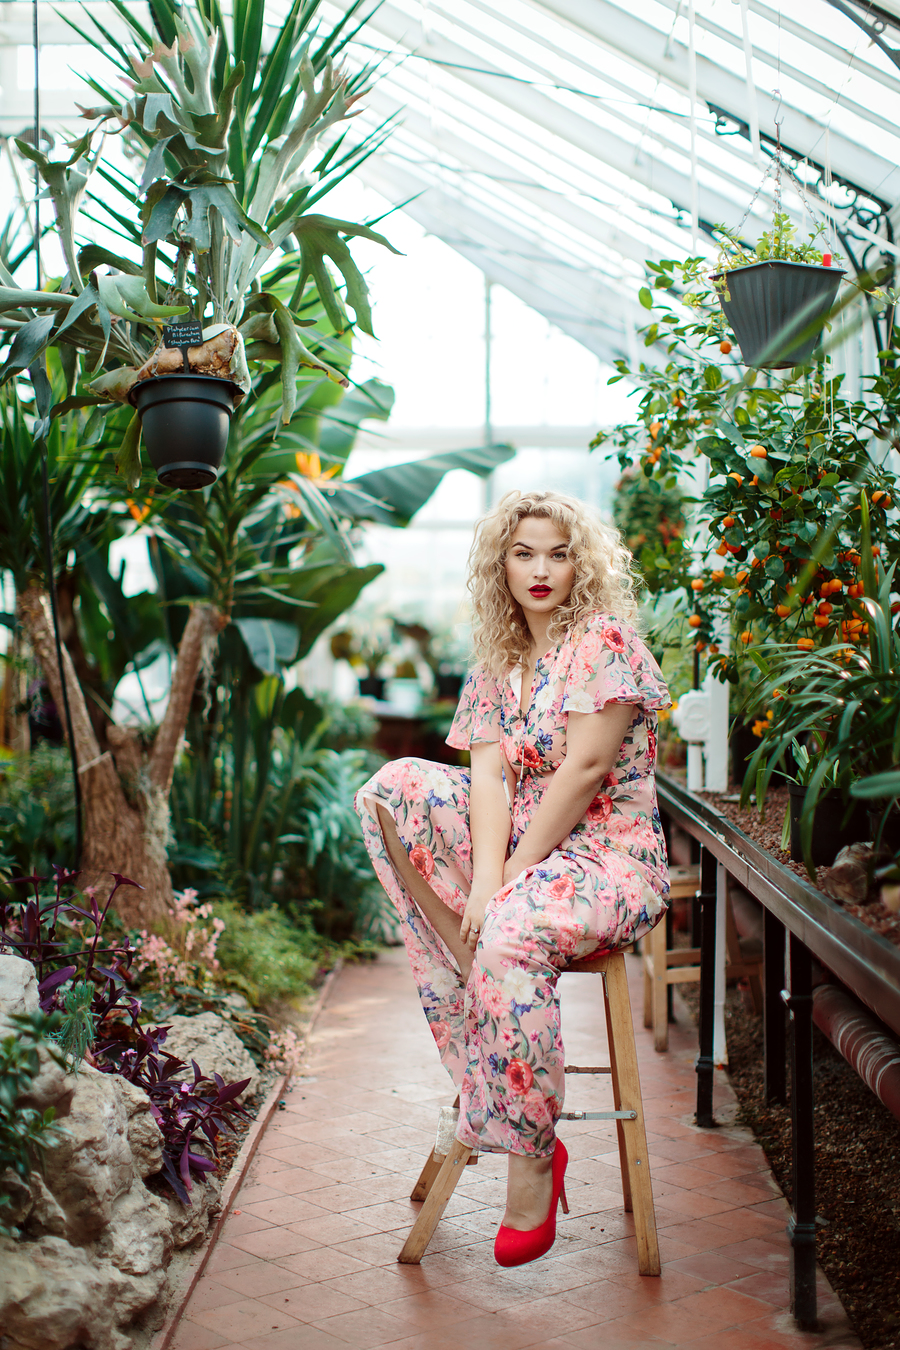 The Greenhouse / Photography by Sarah Ann Wright, Model Jessica Megan / Uploaded 10th May 2019 @ 11:43 AM